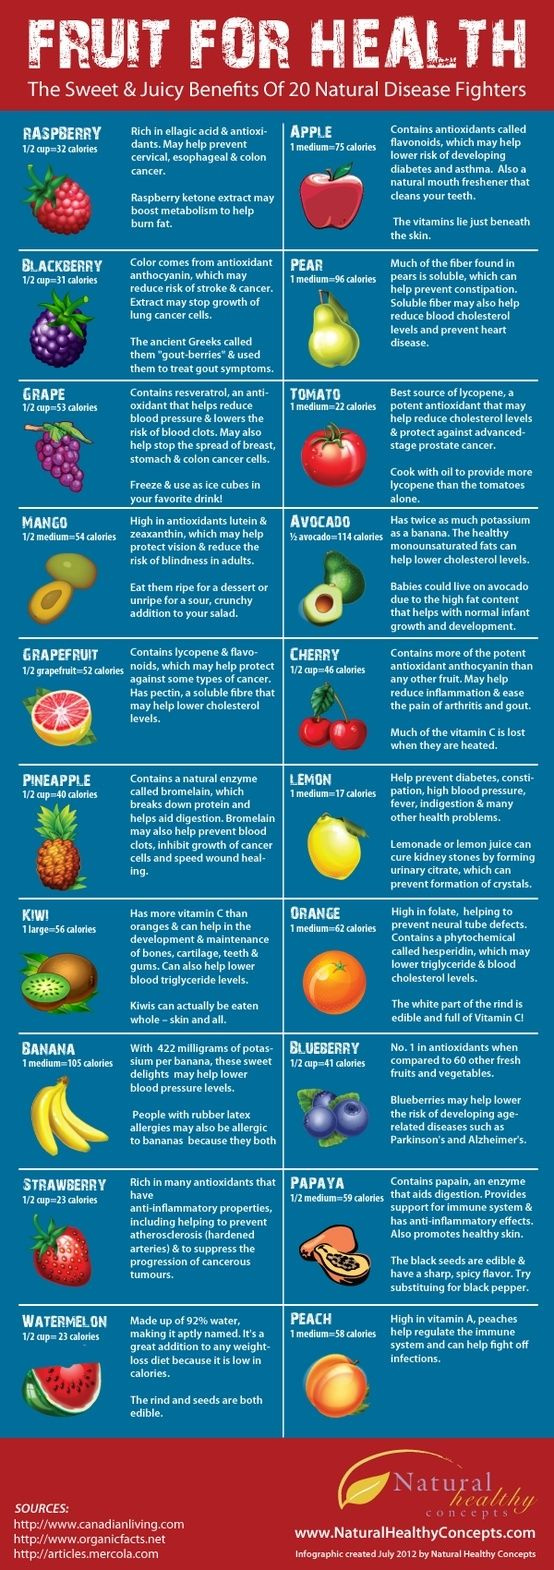 Most fruits are packed with antioxidants, fibre, potassium, and vitamins! Plus, they have all sorts of health benefits to go along with by Mooky